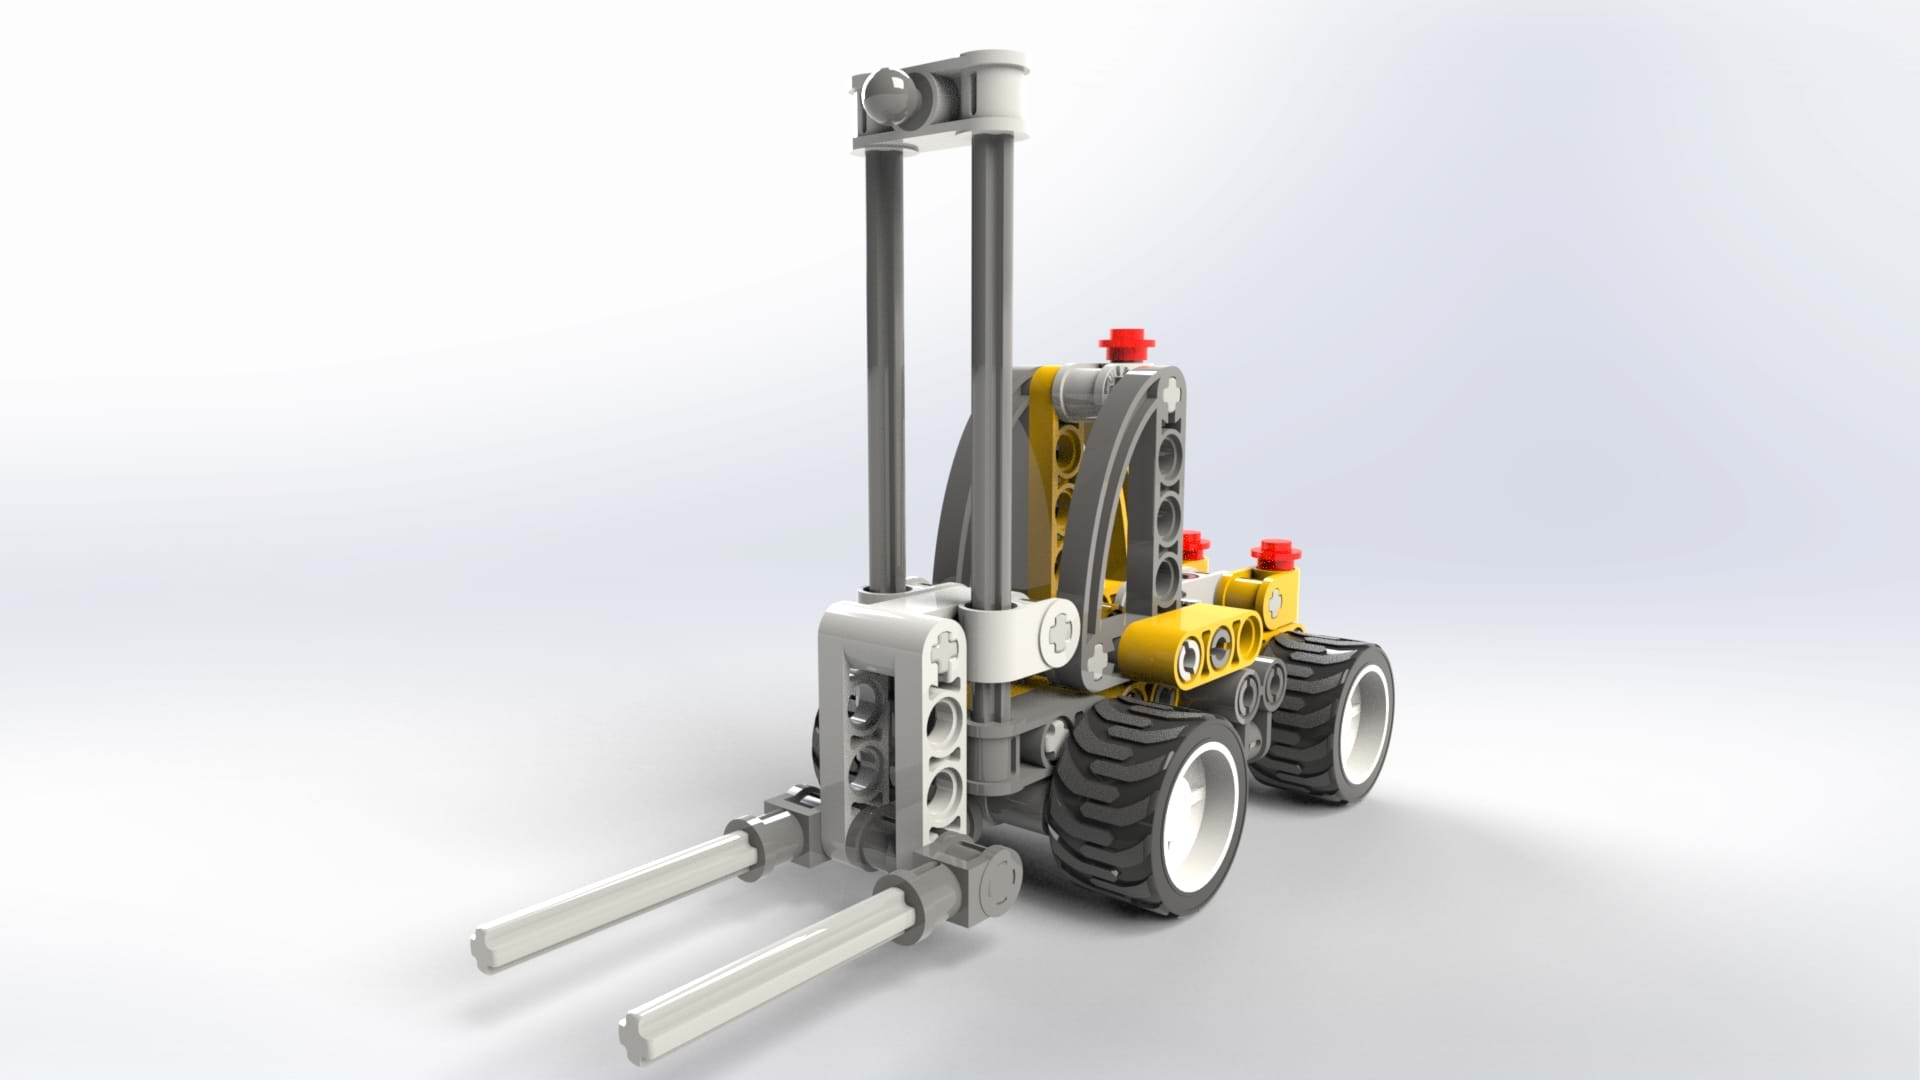 Lego Forklift in SOLIDWORKS Visualize